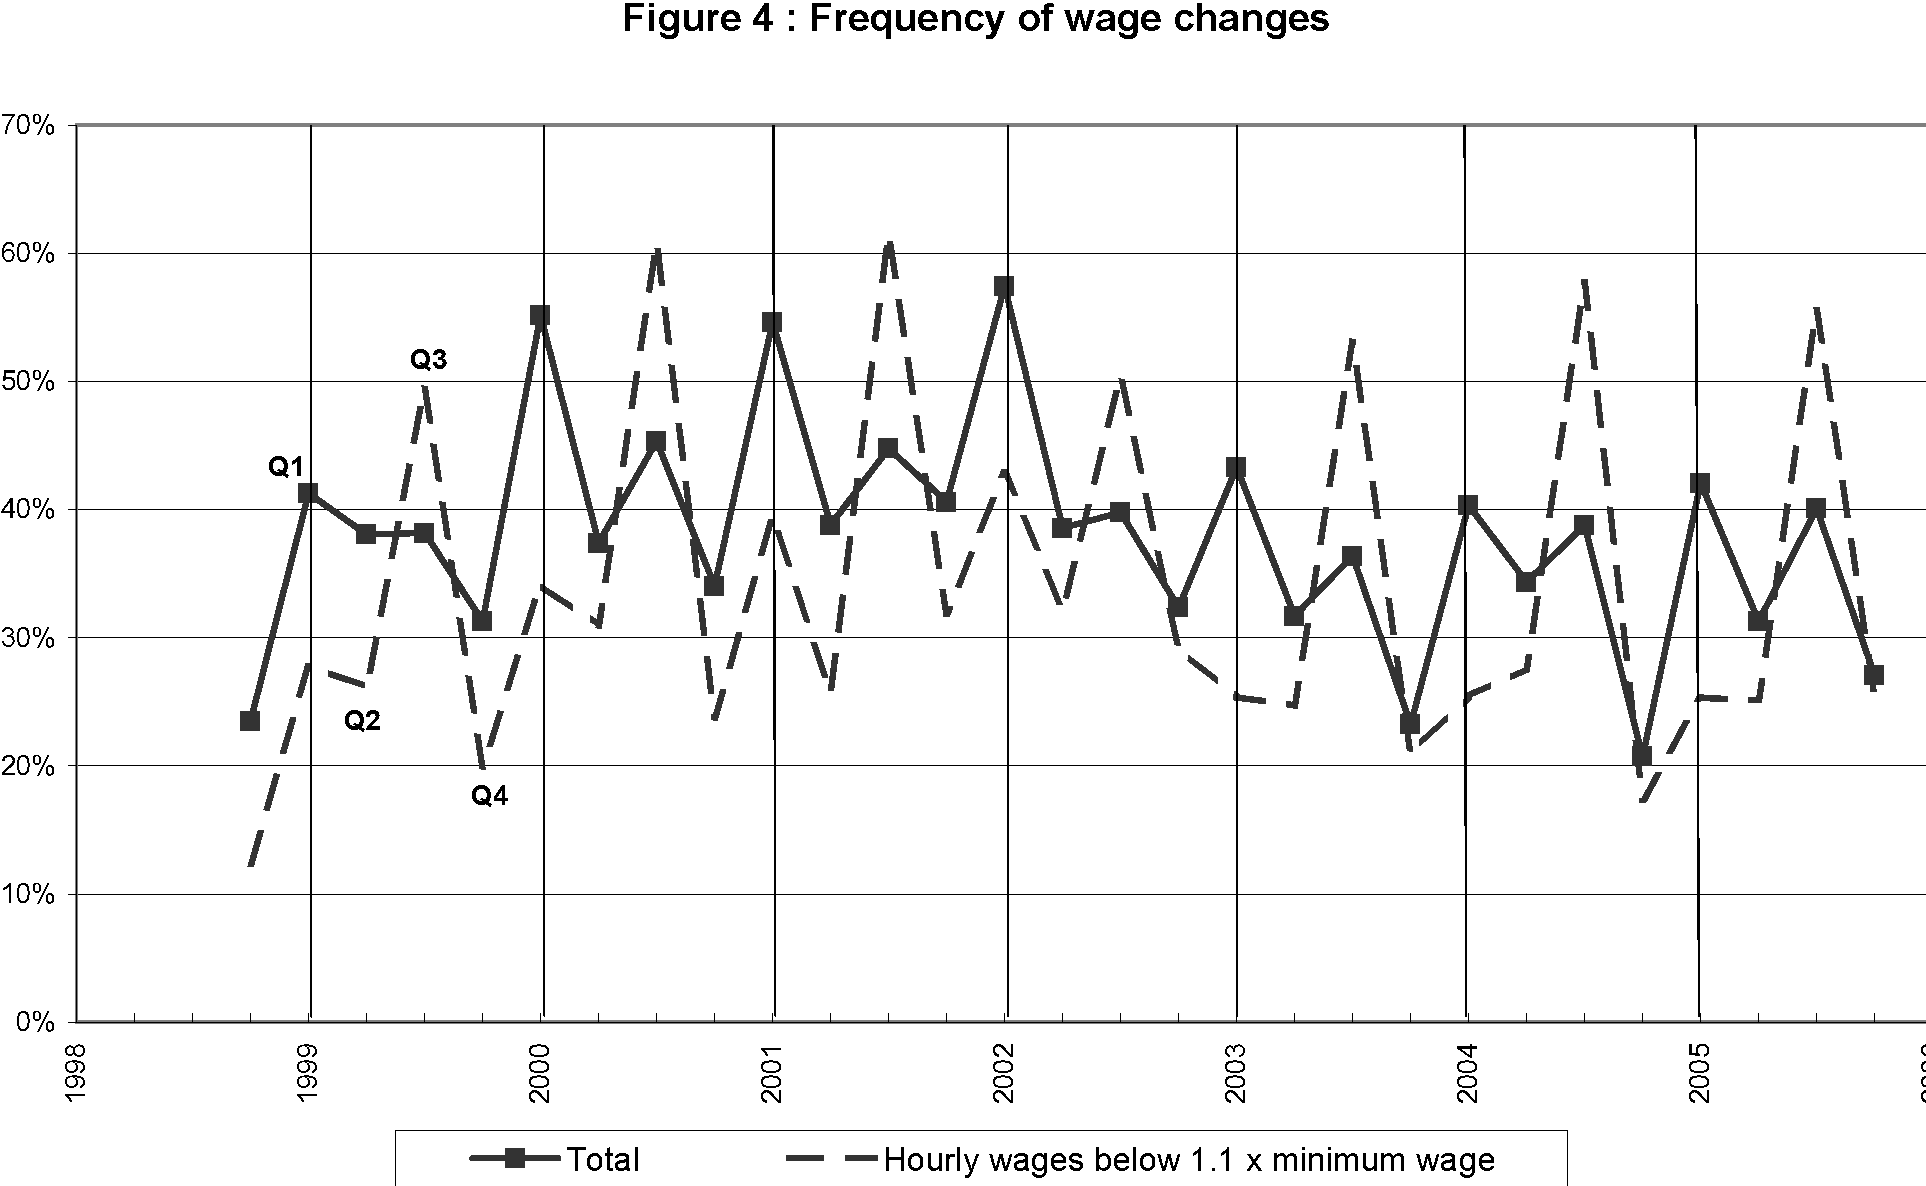 Figure 4 : Frequency of wage changes